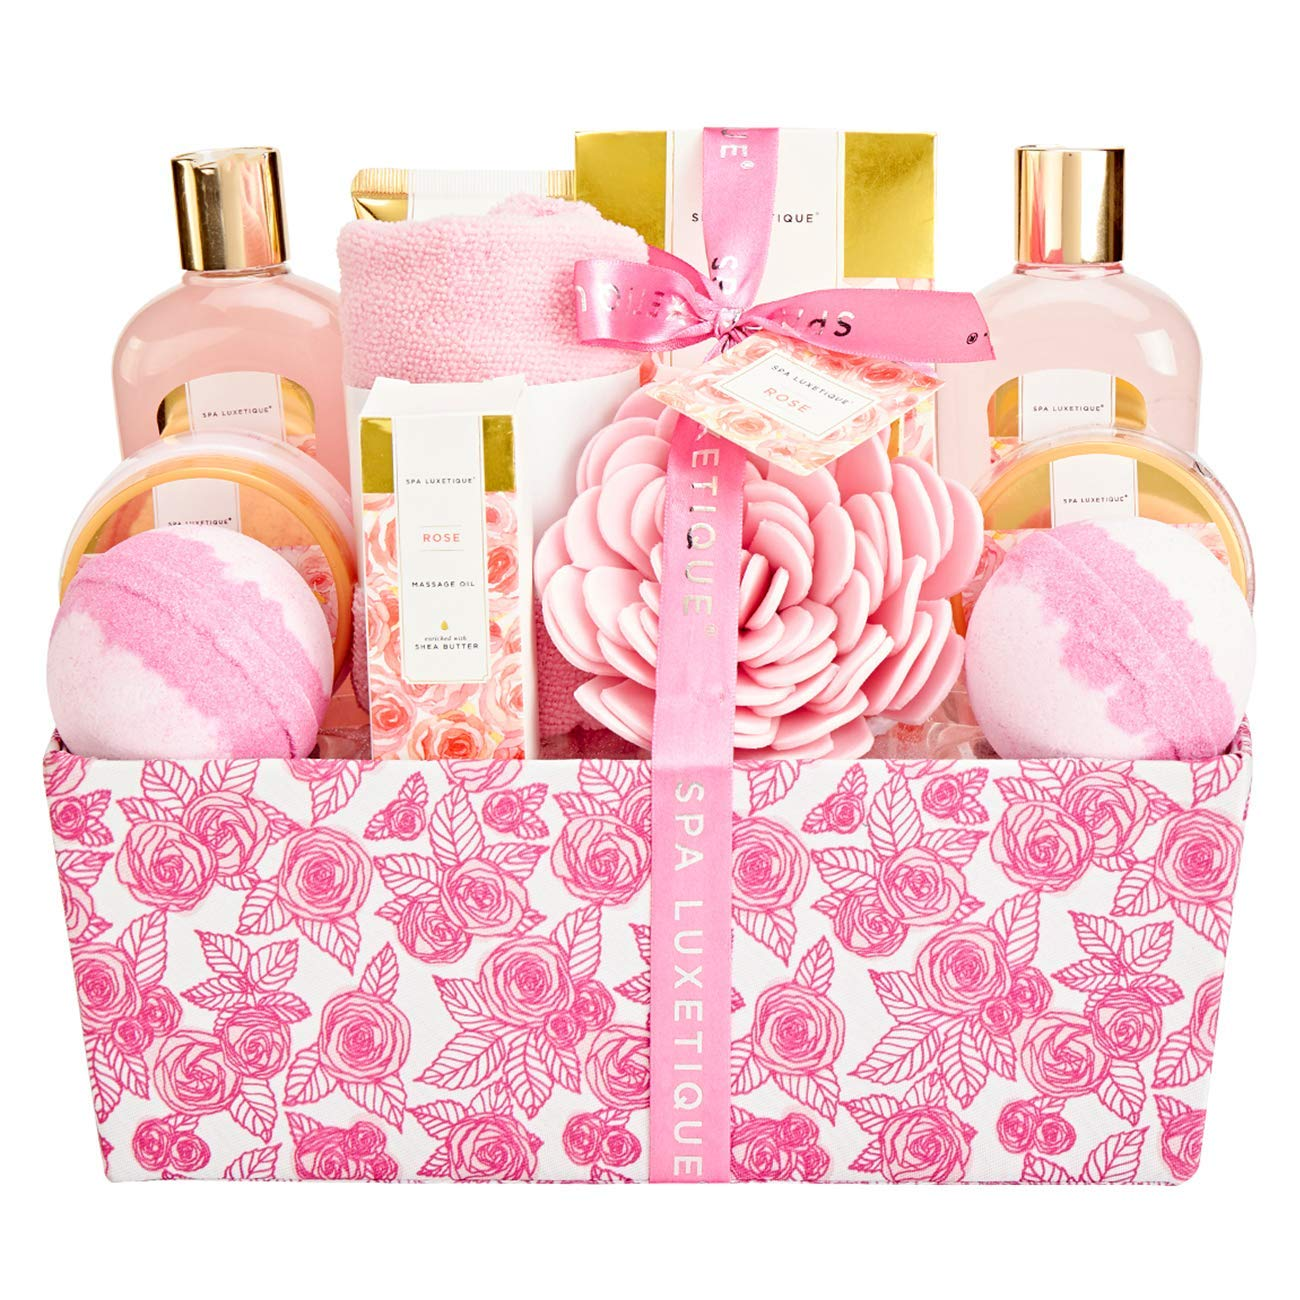 Gifts for Women Spa Luxetique Relaxing San Diego Mall Ranking TOP19 Gift Basket Gif